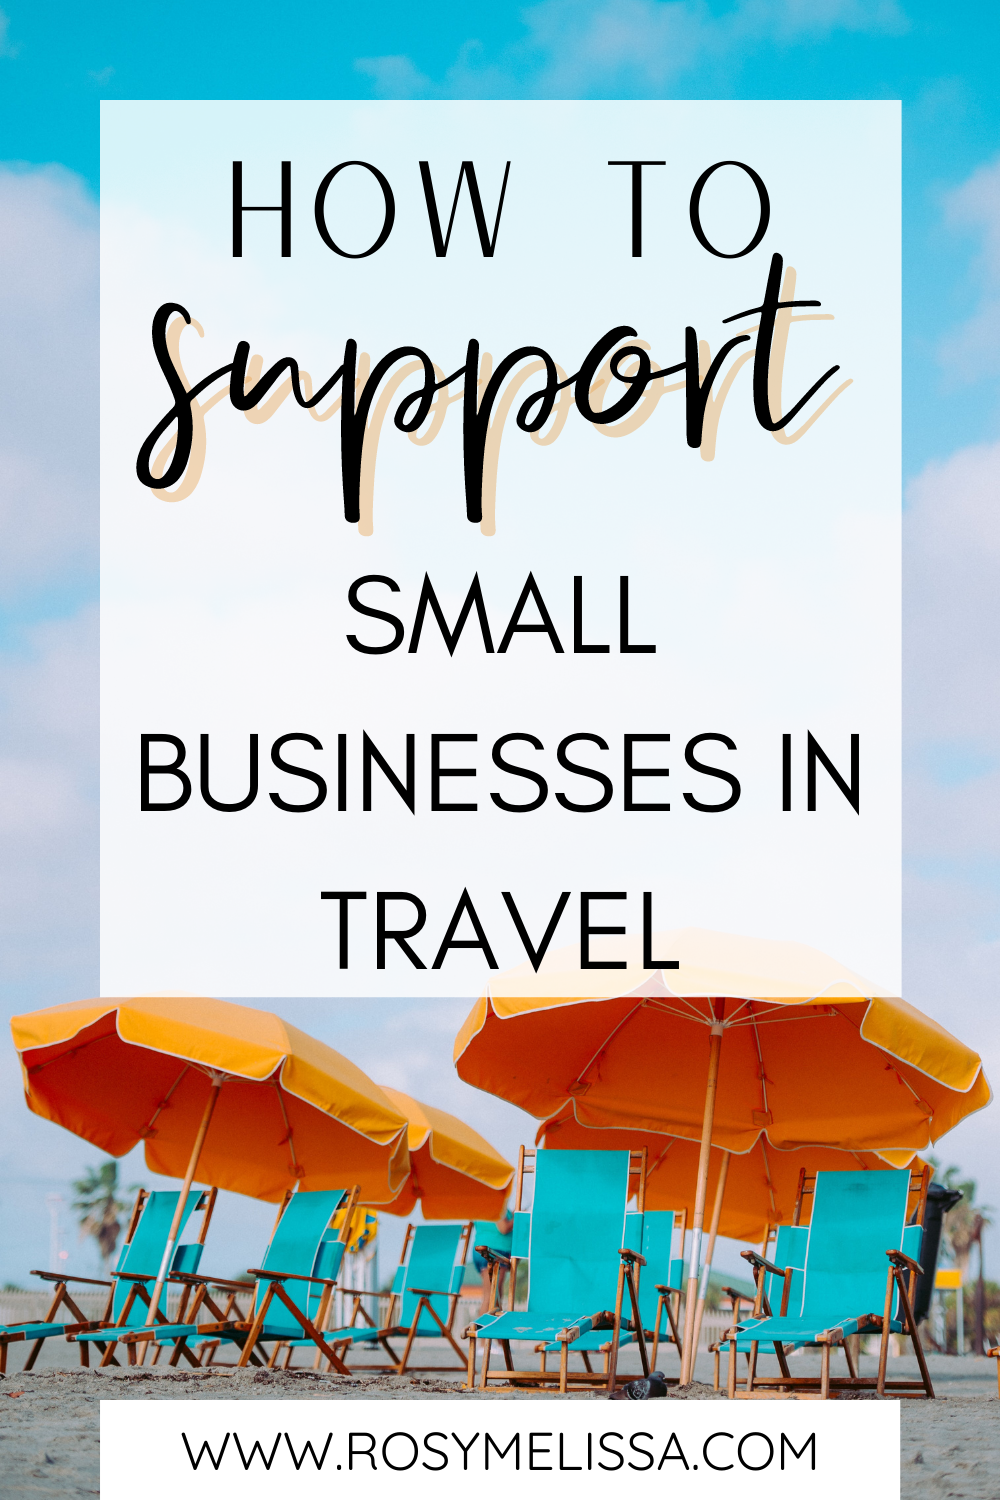 tips to support small businesses in travel, how to support local businesses in tourism, the tourism and travel industry, travel tips